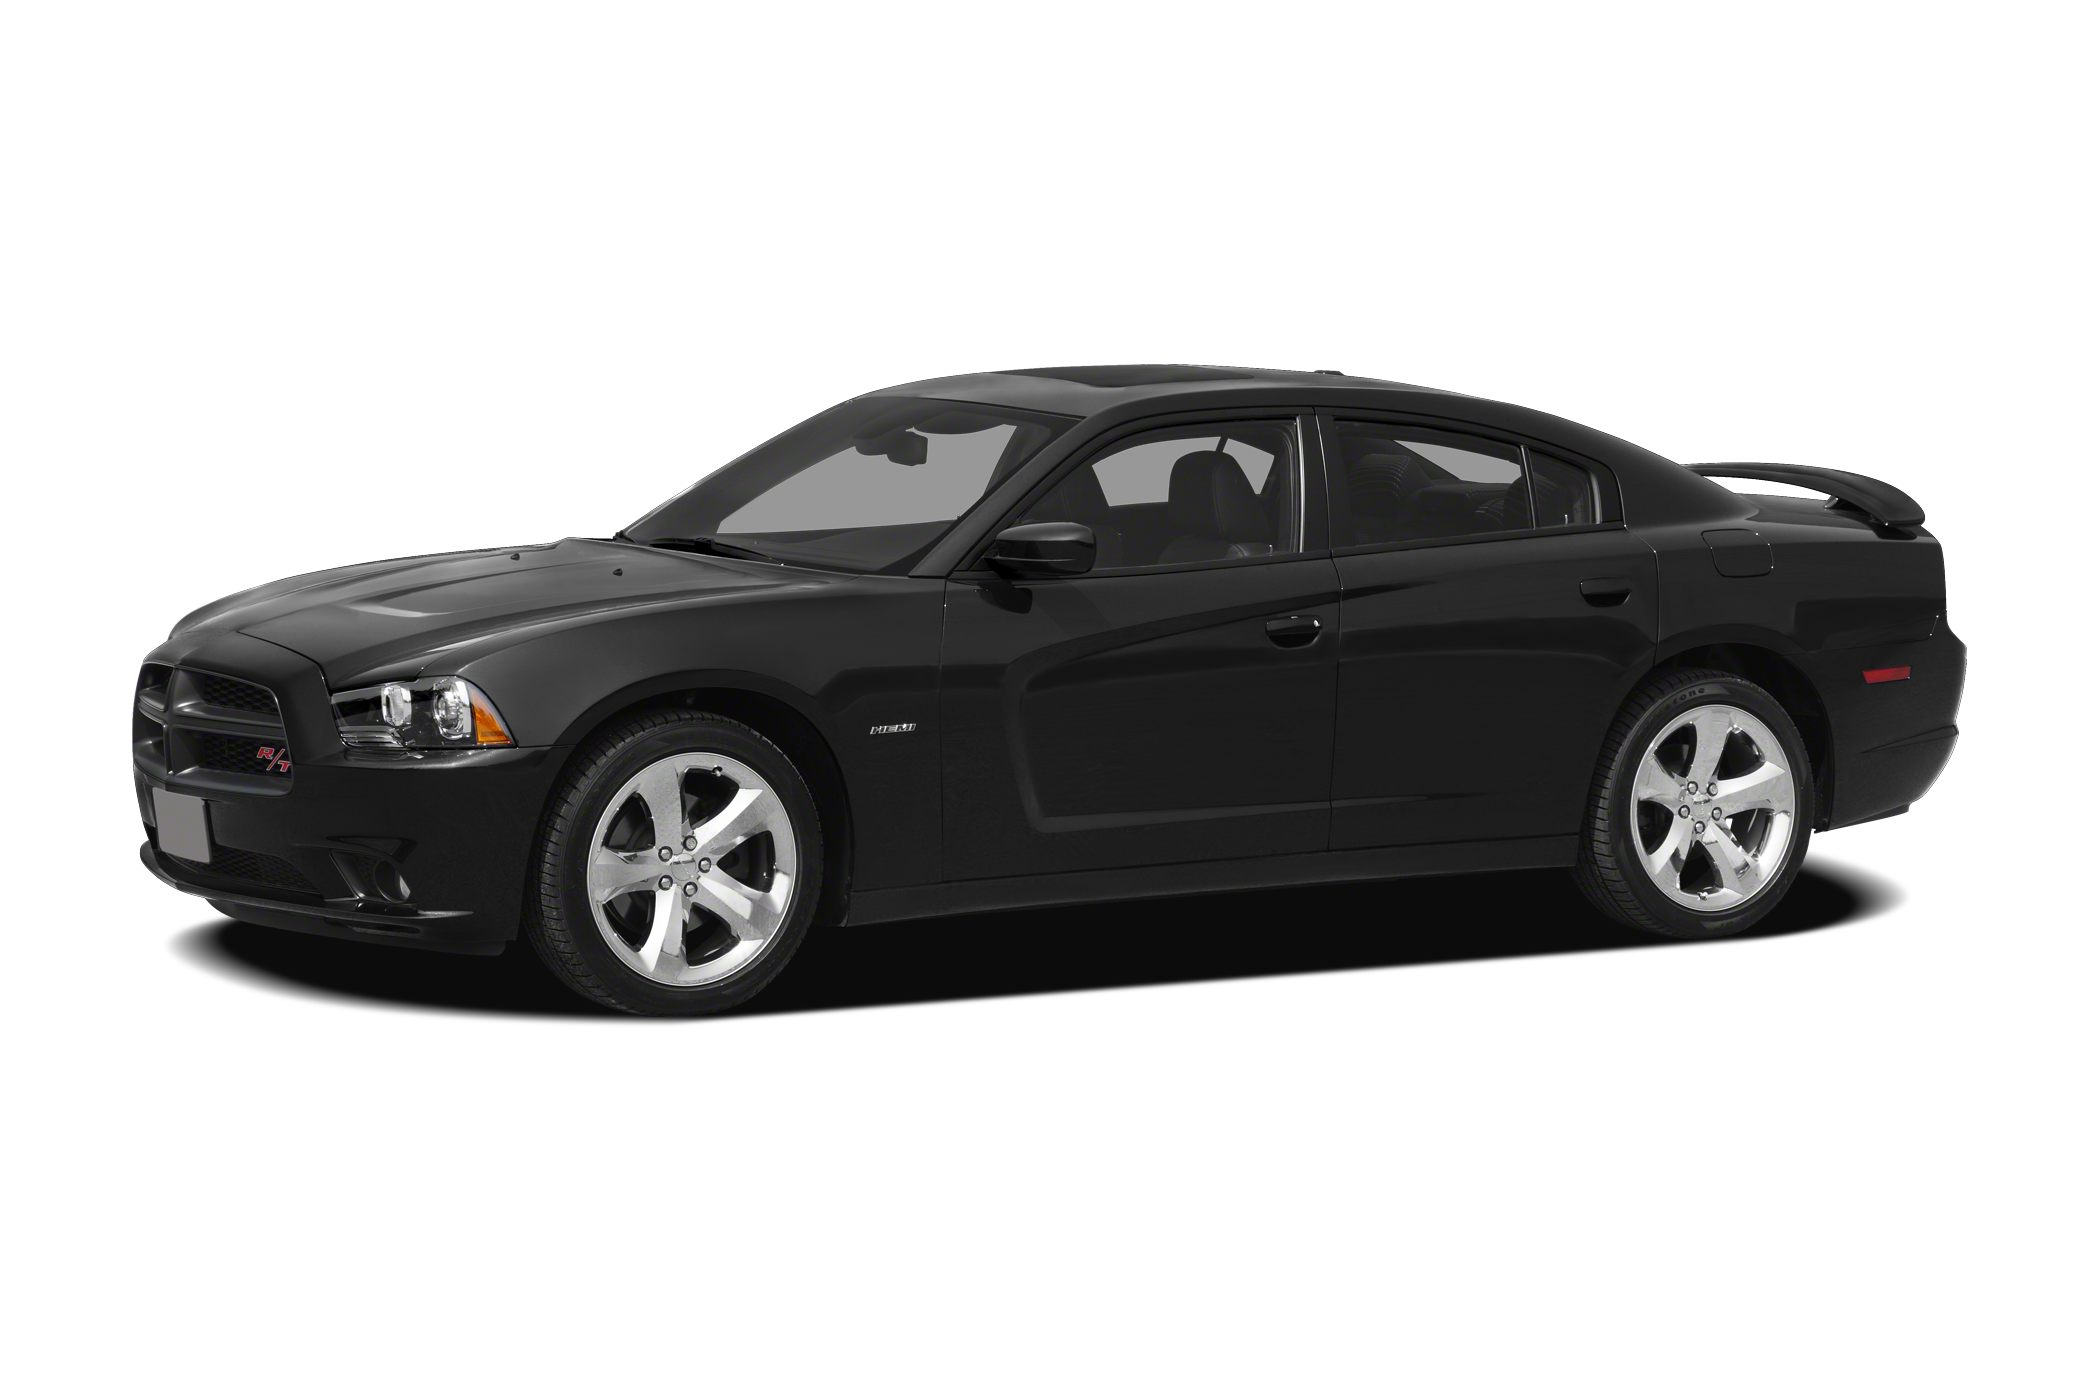 2012 Dodge Charger R/T Sedan for sale in Brownwood for $27,842 with 8,580 miles.